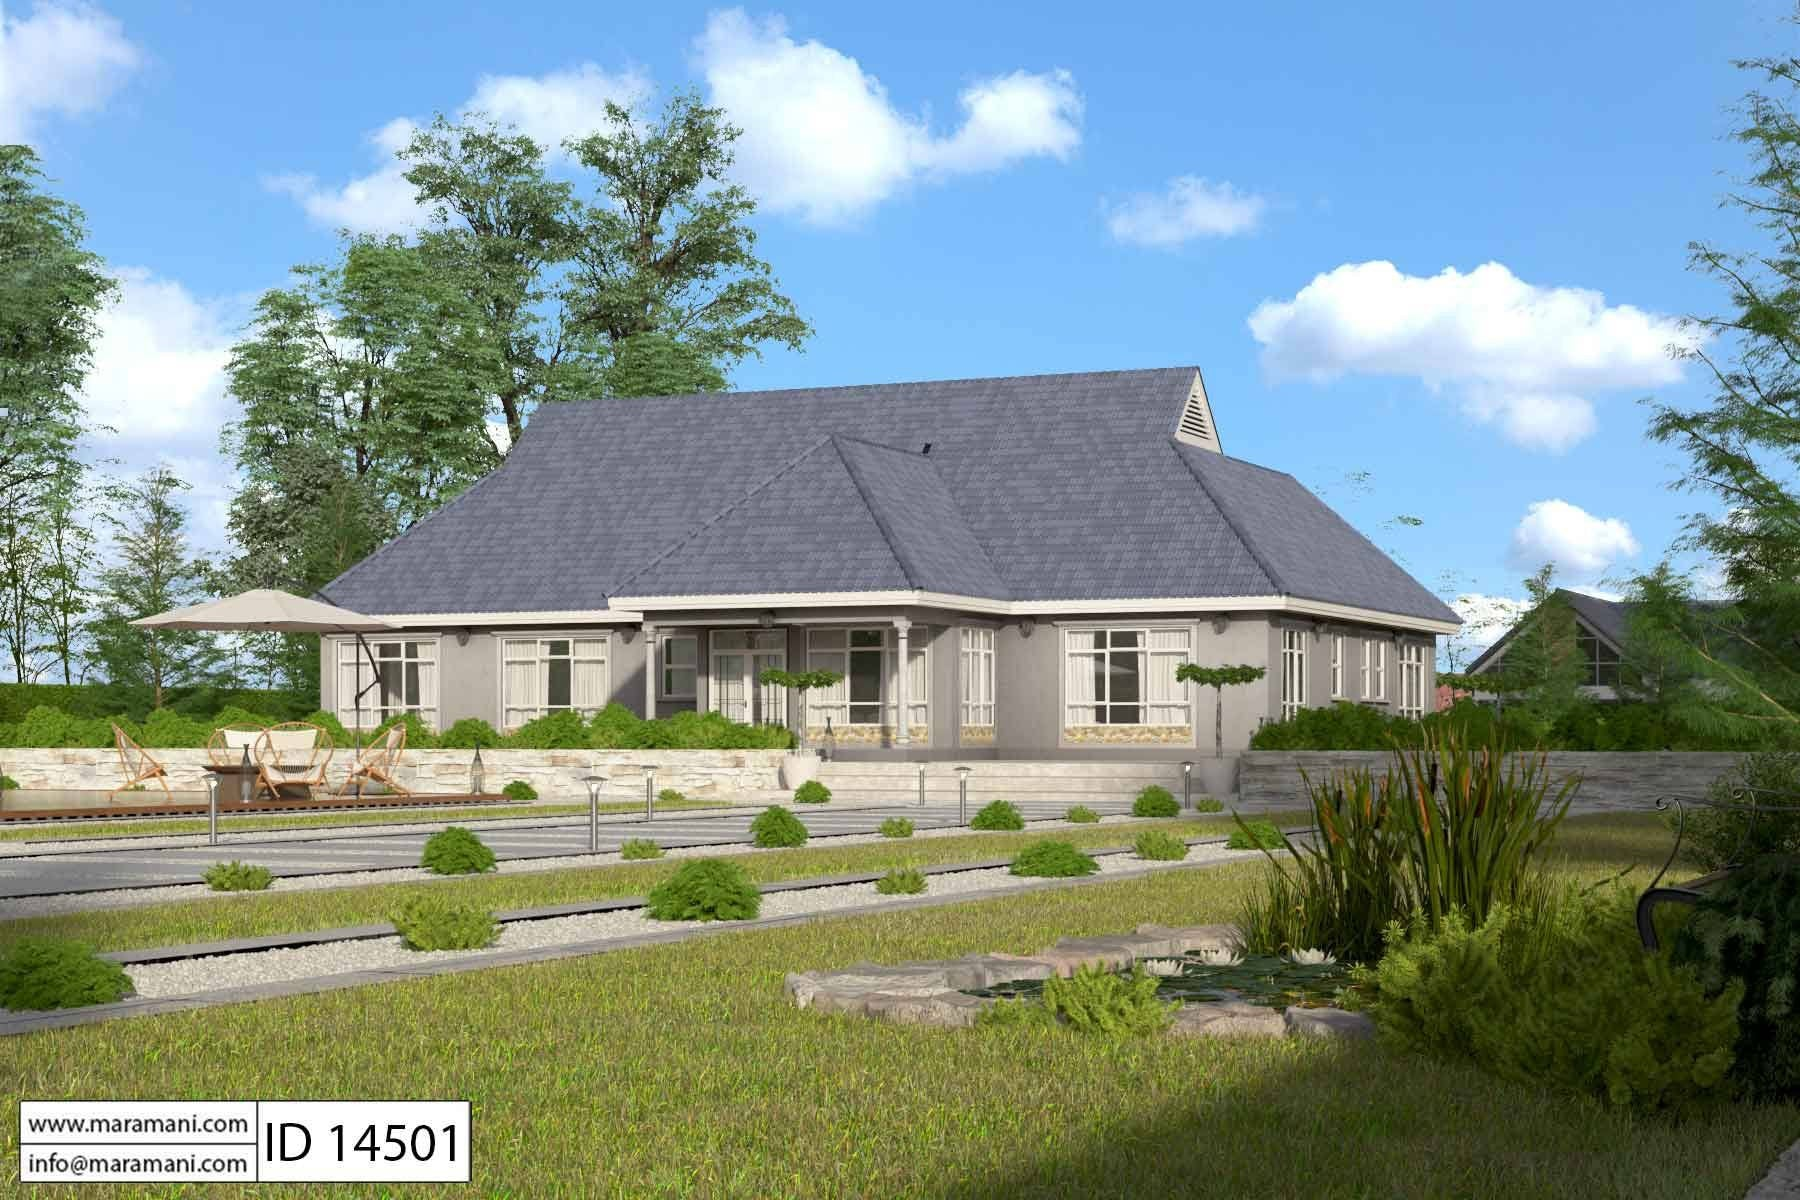 Four bedroom bungalow plan id 14501 house plans by for Idaho house plans